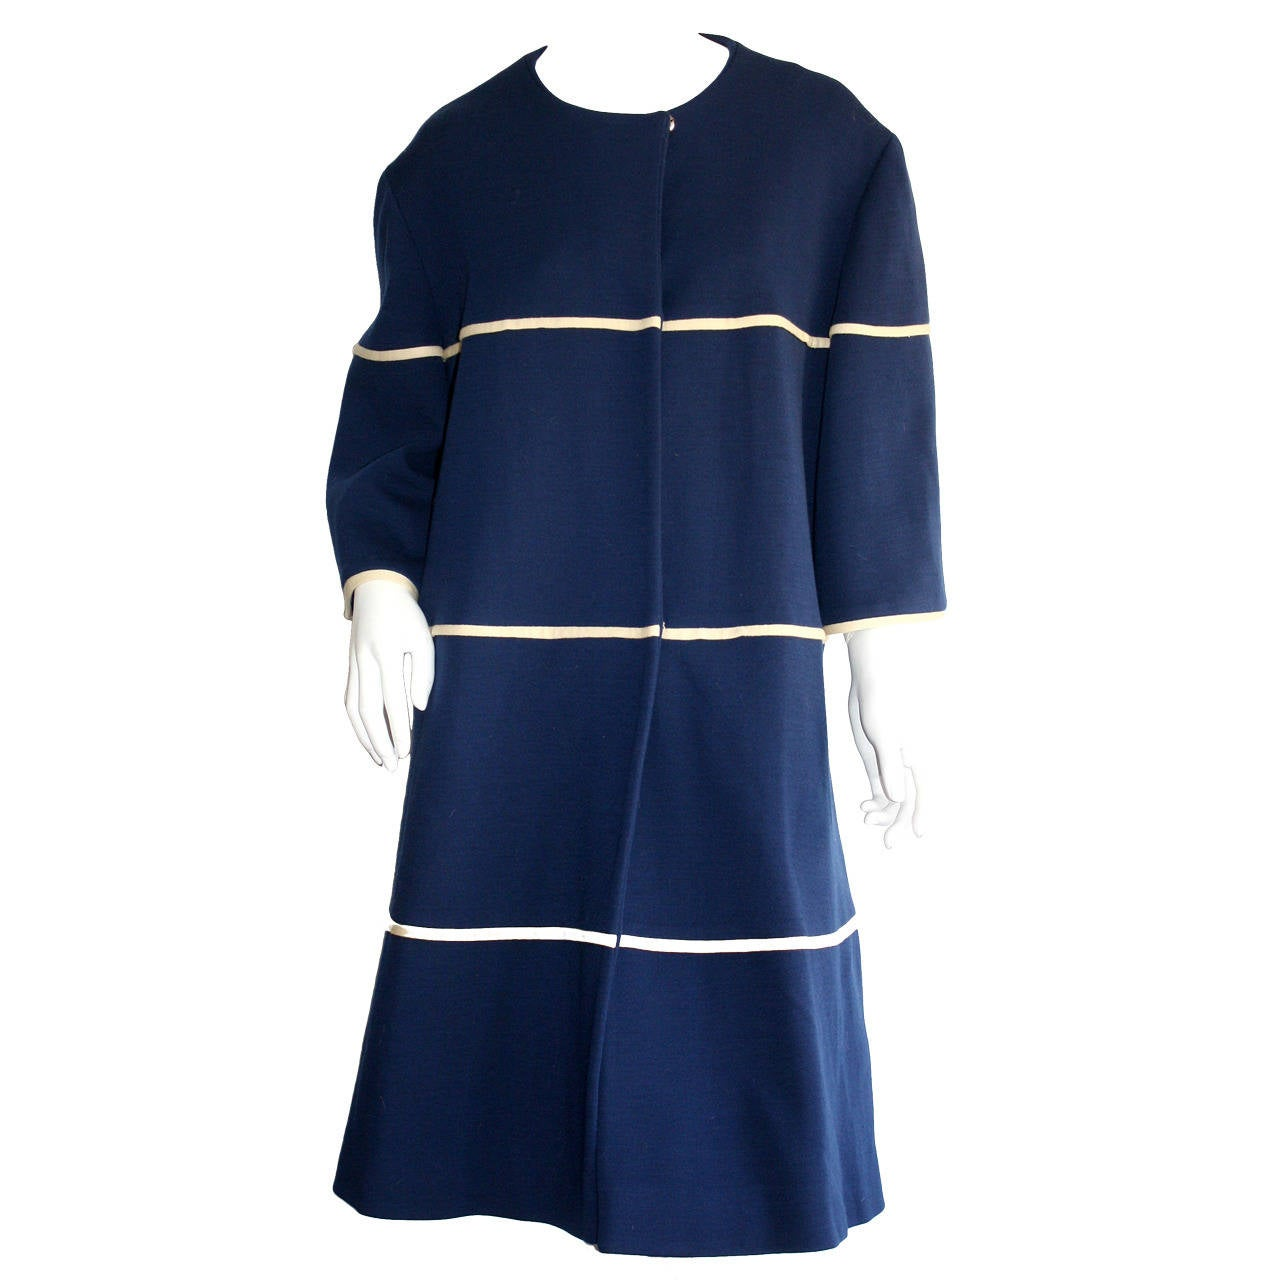 Lilli Ann 1960s Vintage Navy Blue & White Swing Jacket Trapeze Coat